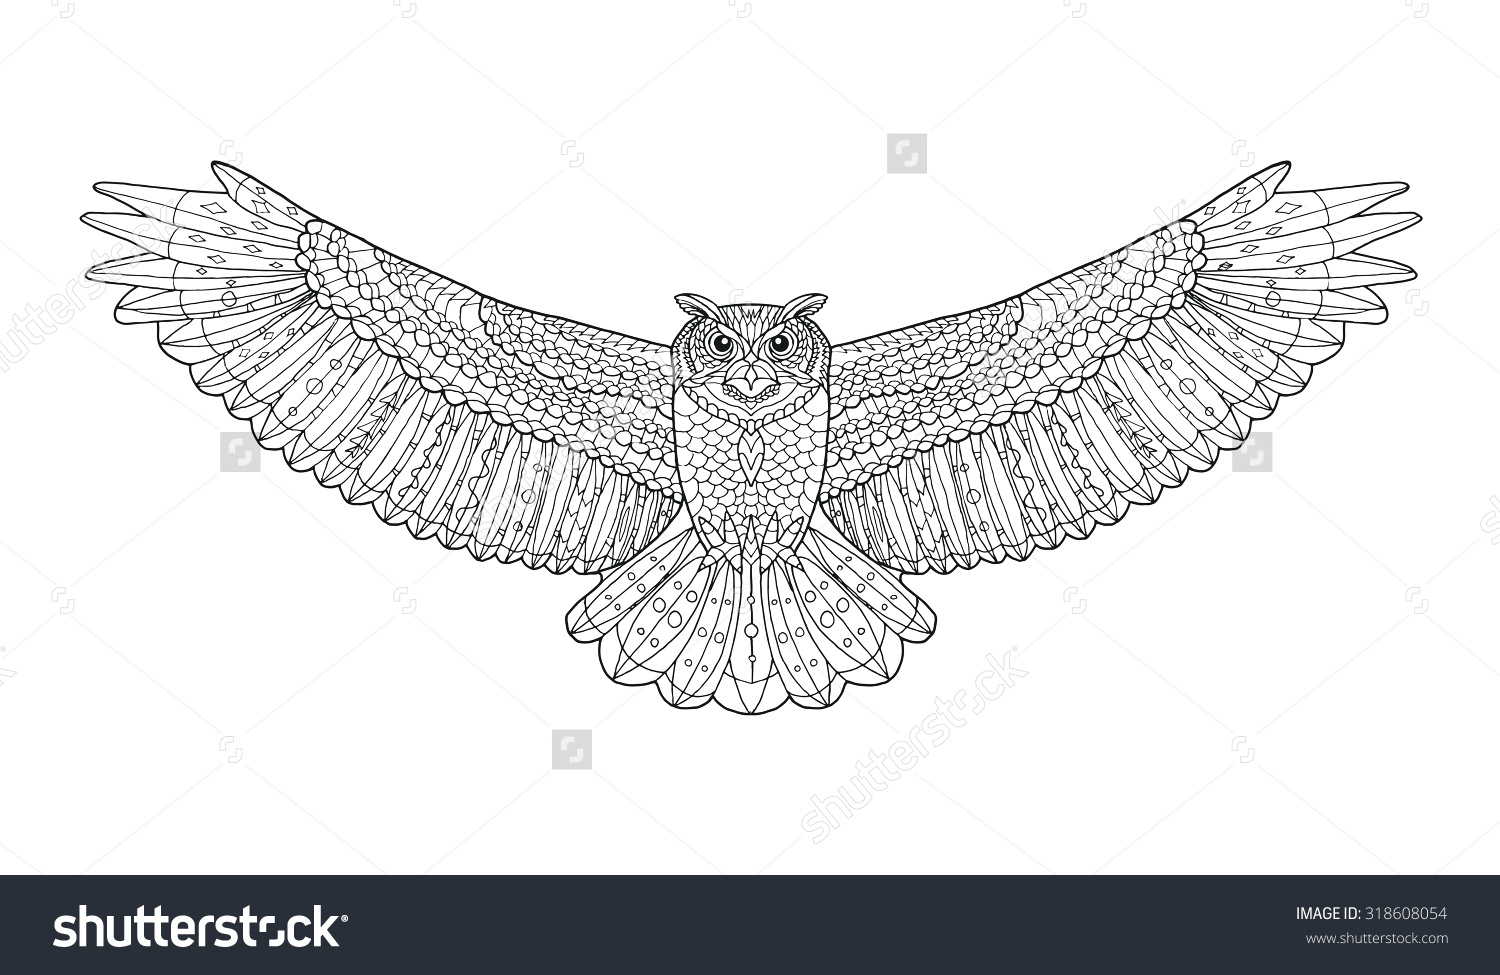 Eagle-owl coloring #13, Download drawings